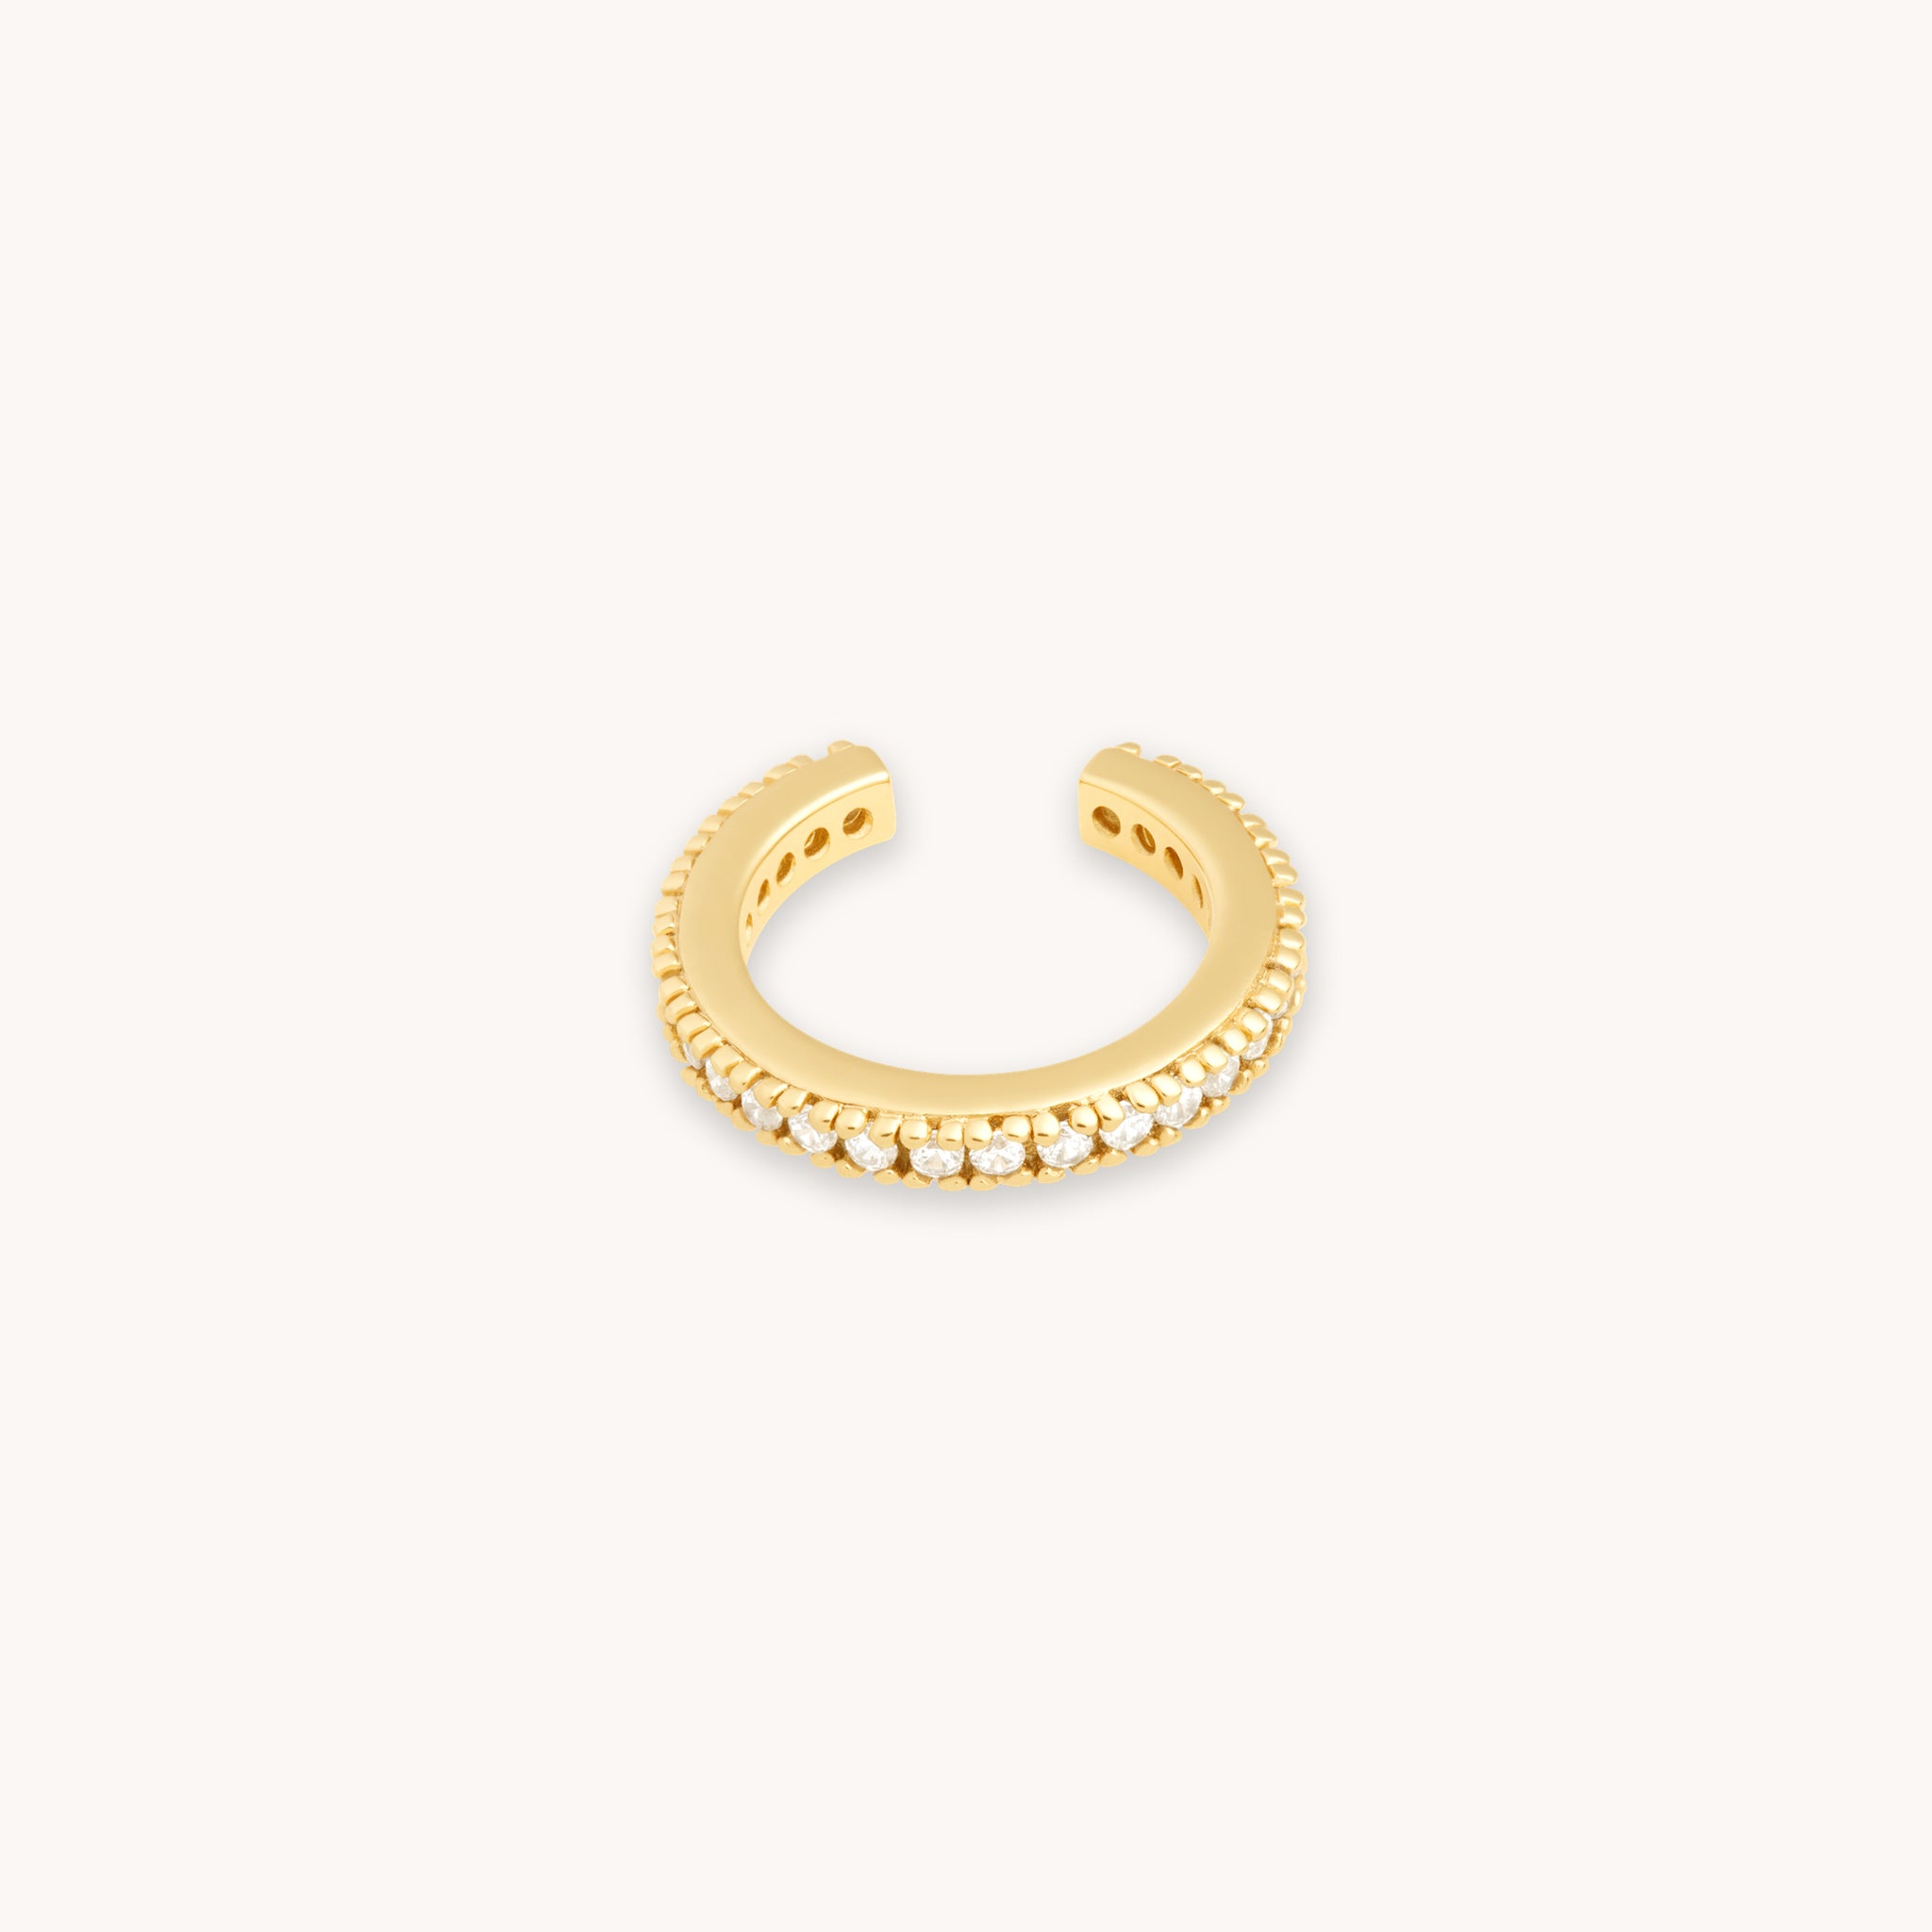 Mystic Simple Stud Earrings in Gold worn in third lobe piercing